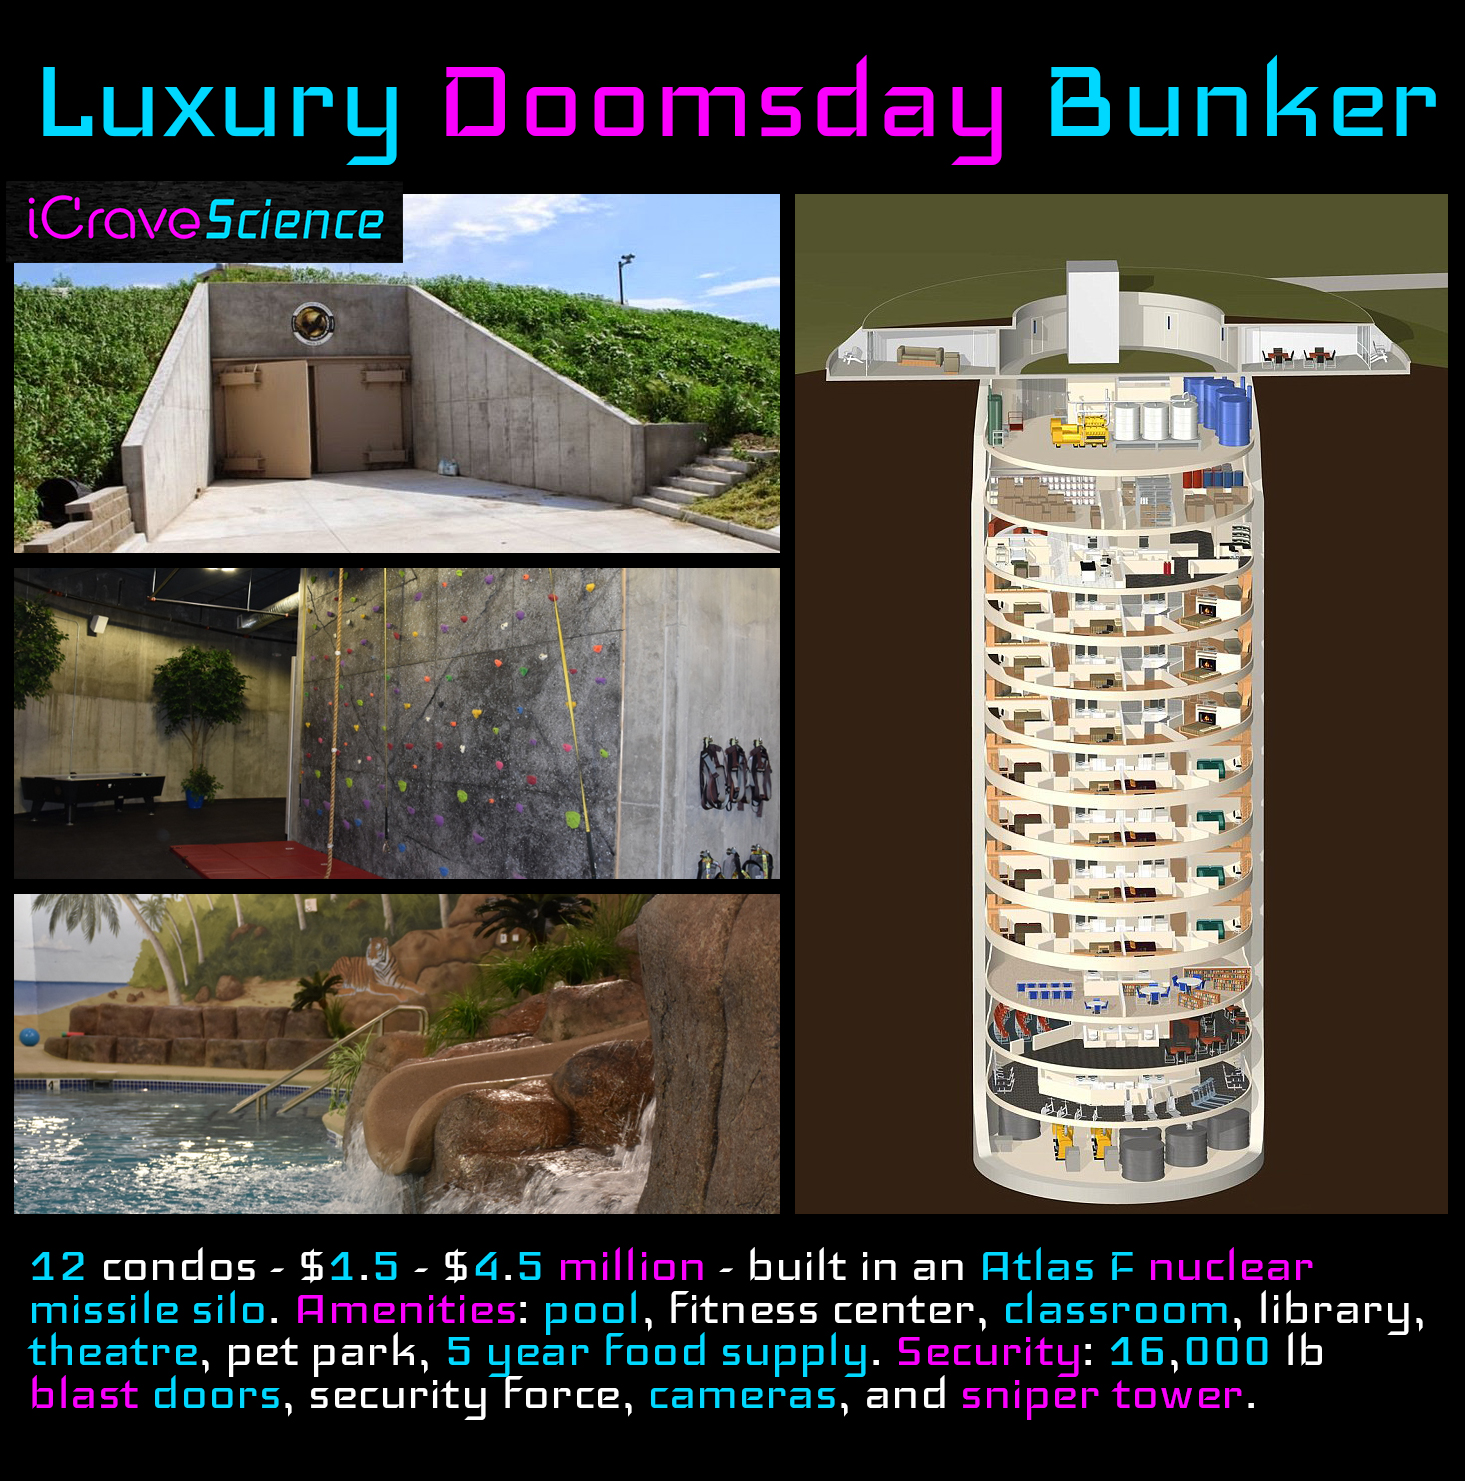 Luxury Doomsday Bunkers For The Wealthy Icravescience